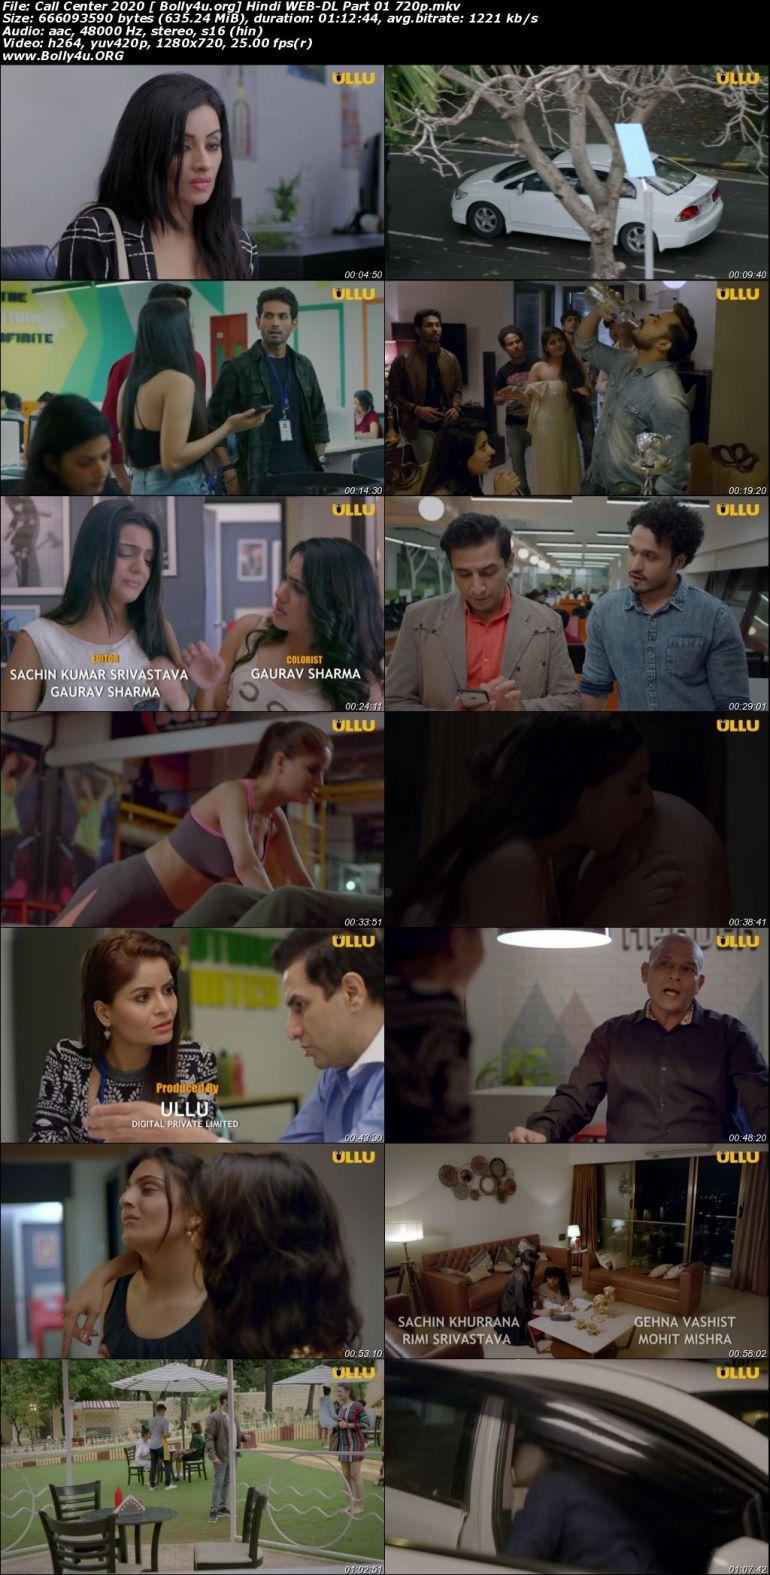 Call Center 2020 WEB-DL 900Mb Hindi Complete S01 Download 720p